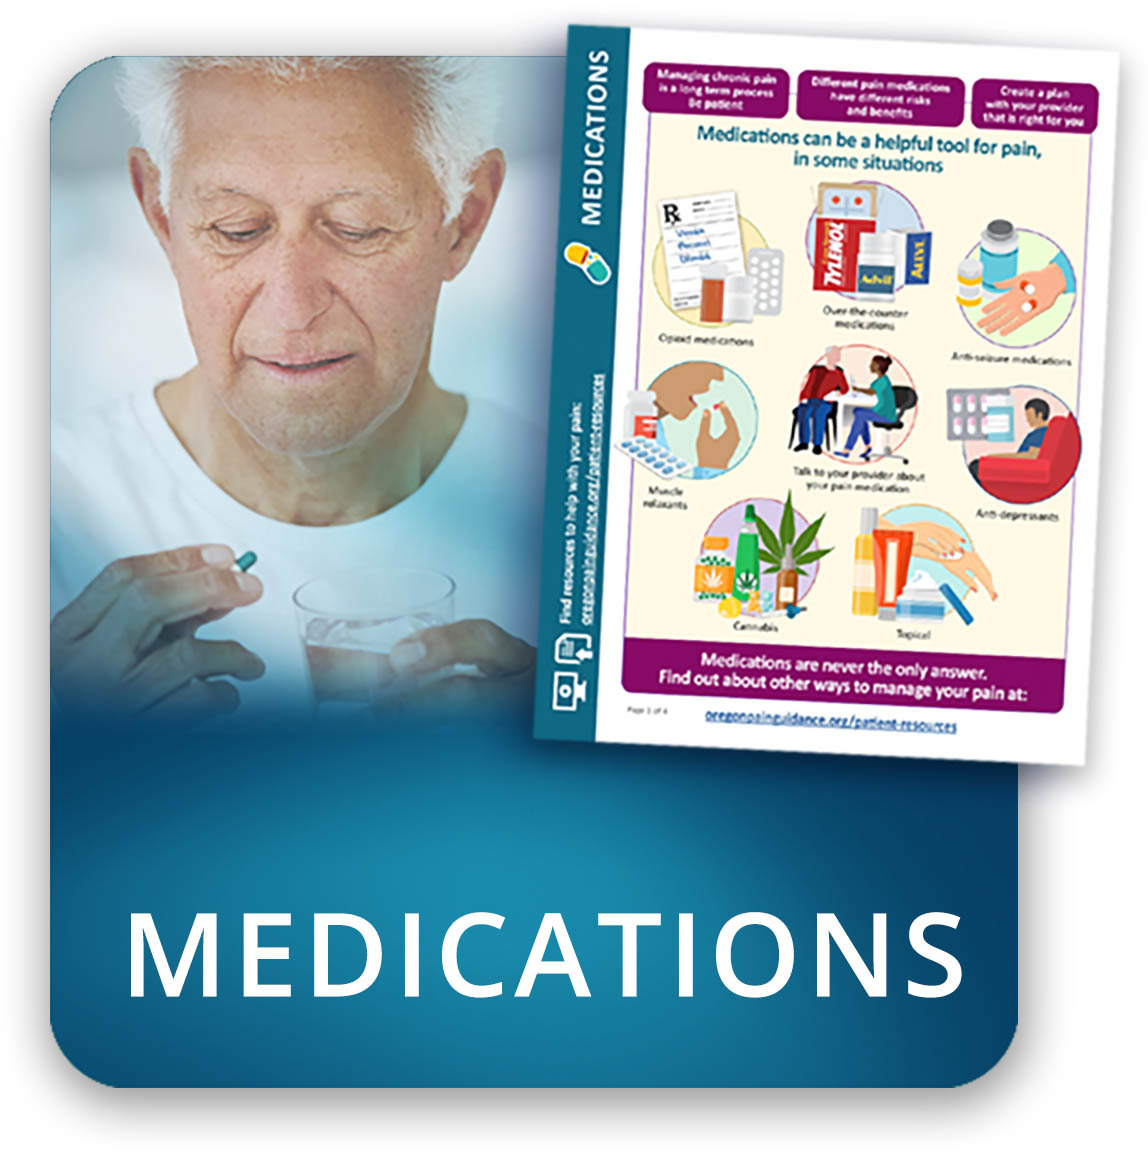 Understand pain and medications